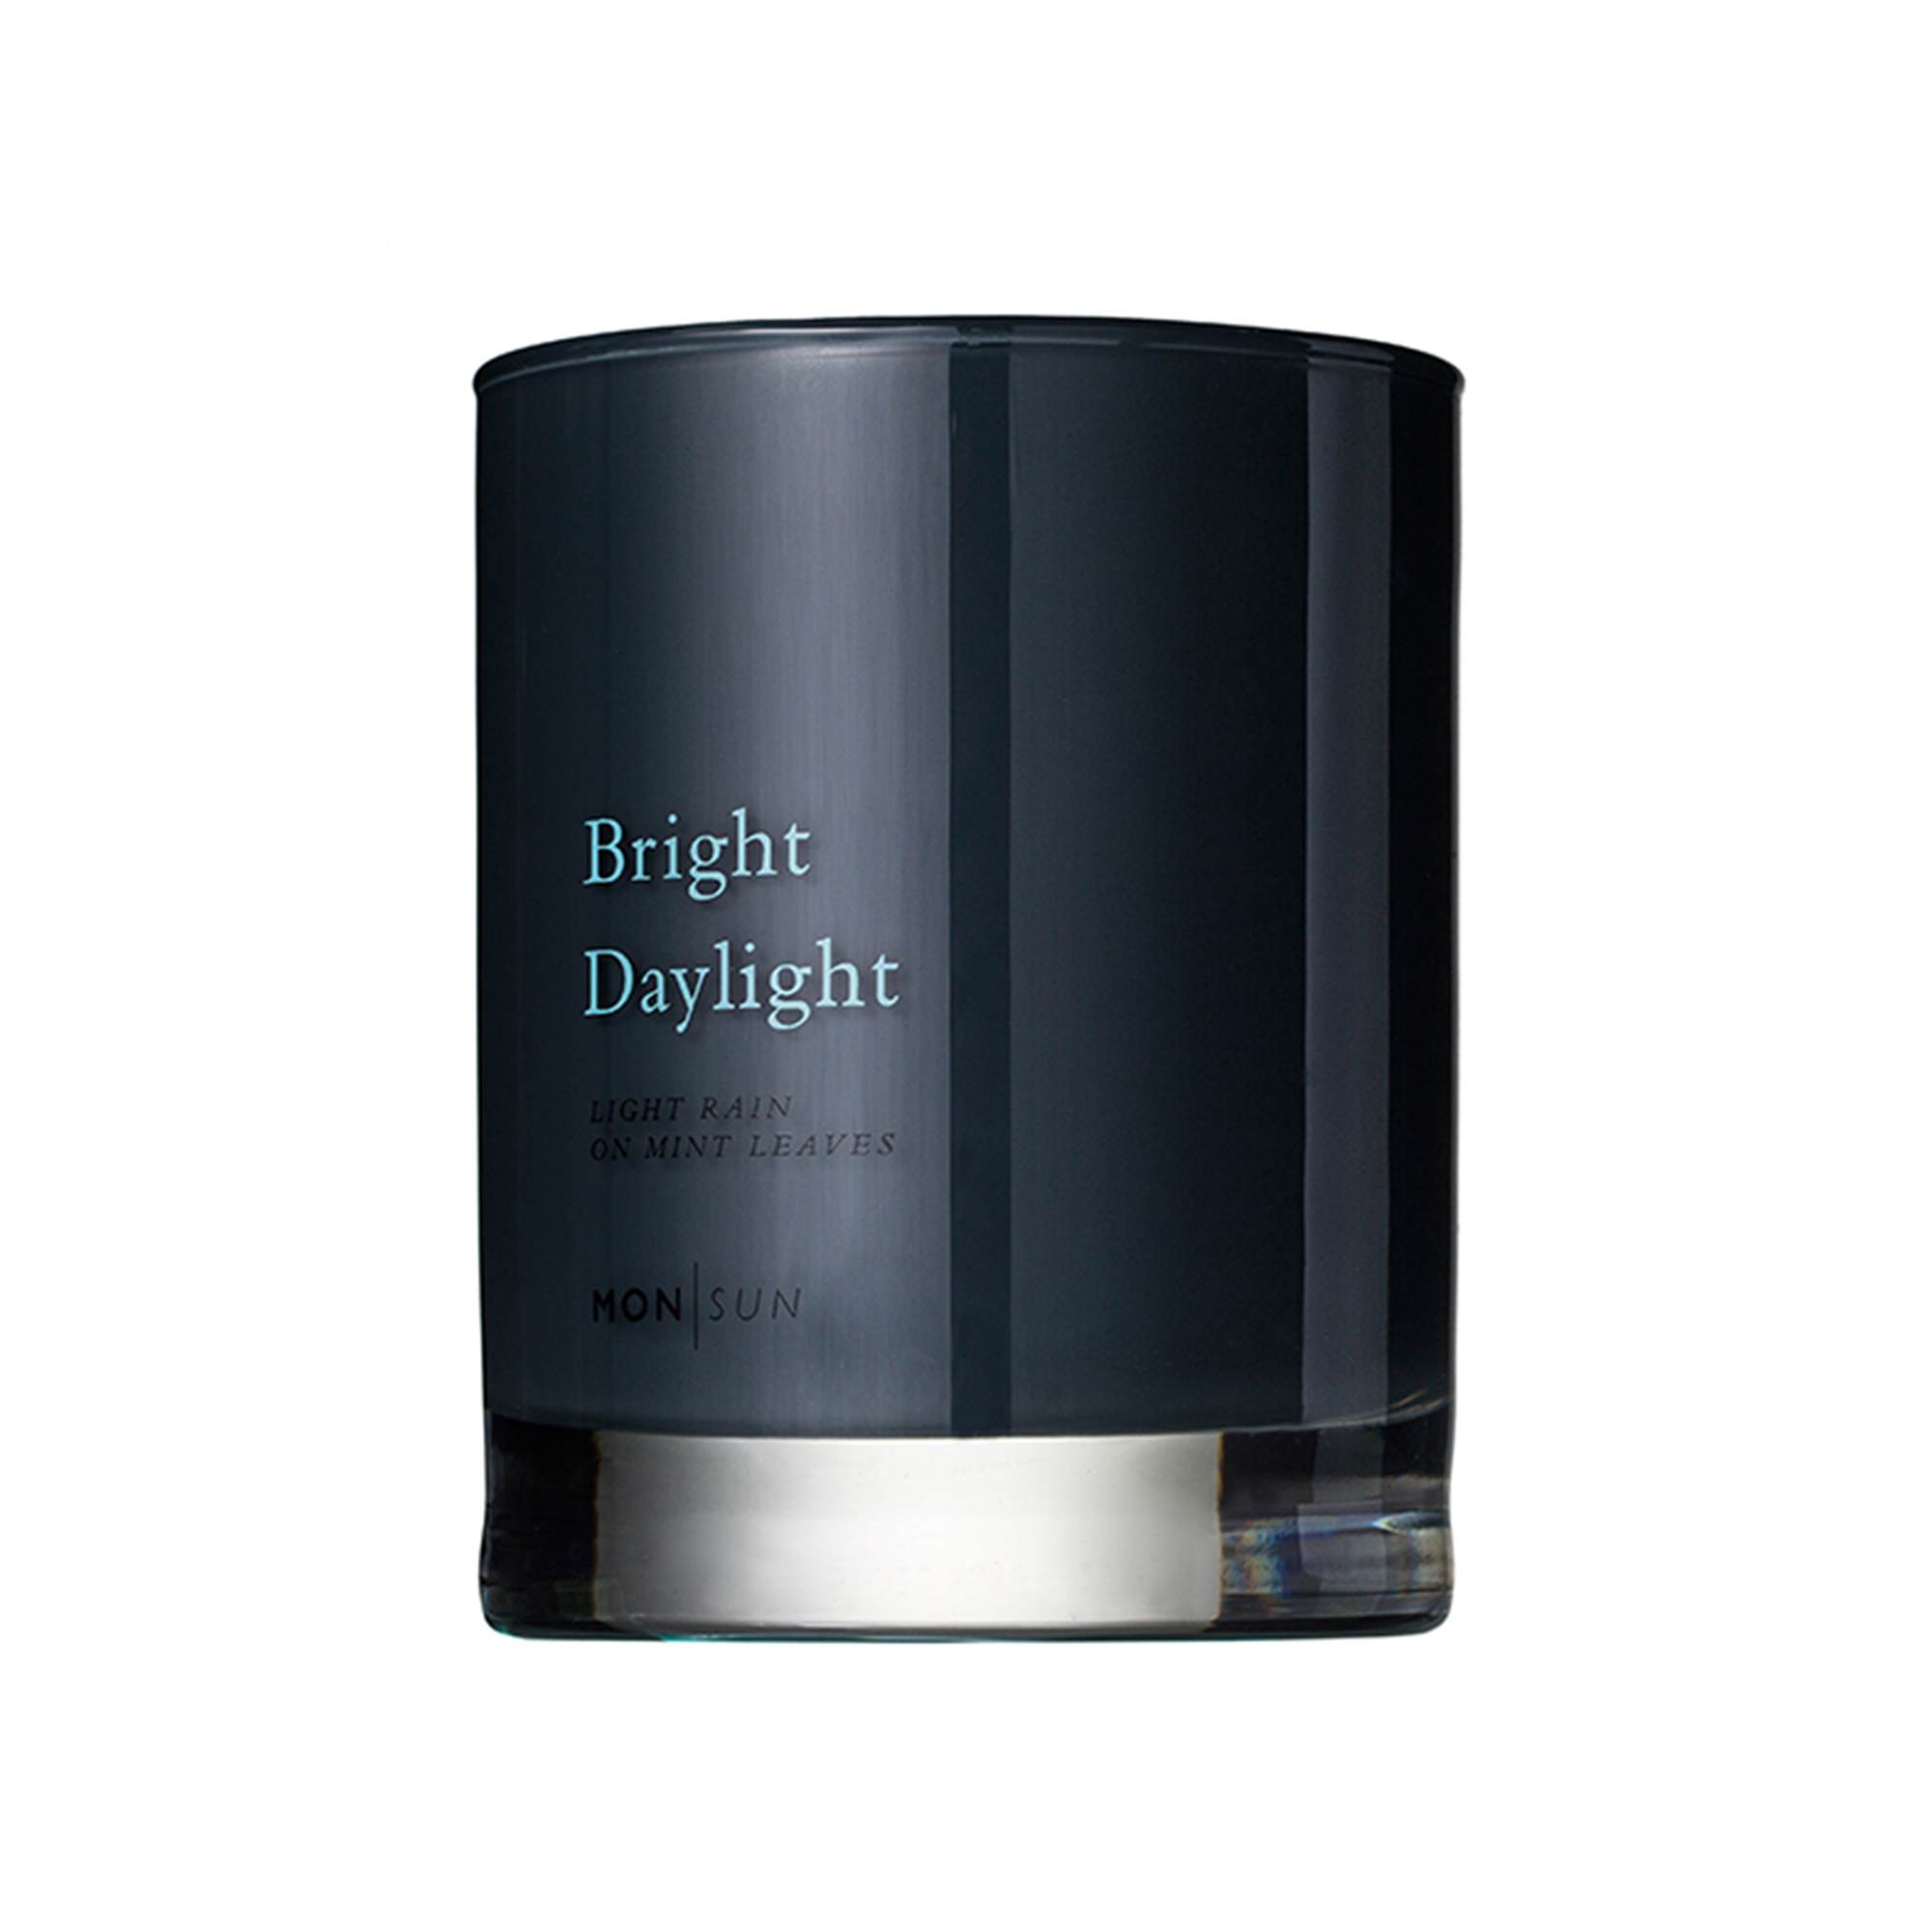 Bright Daylight Detox & Antioxidant Scented Candle 210g